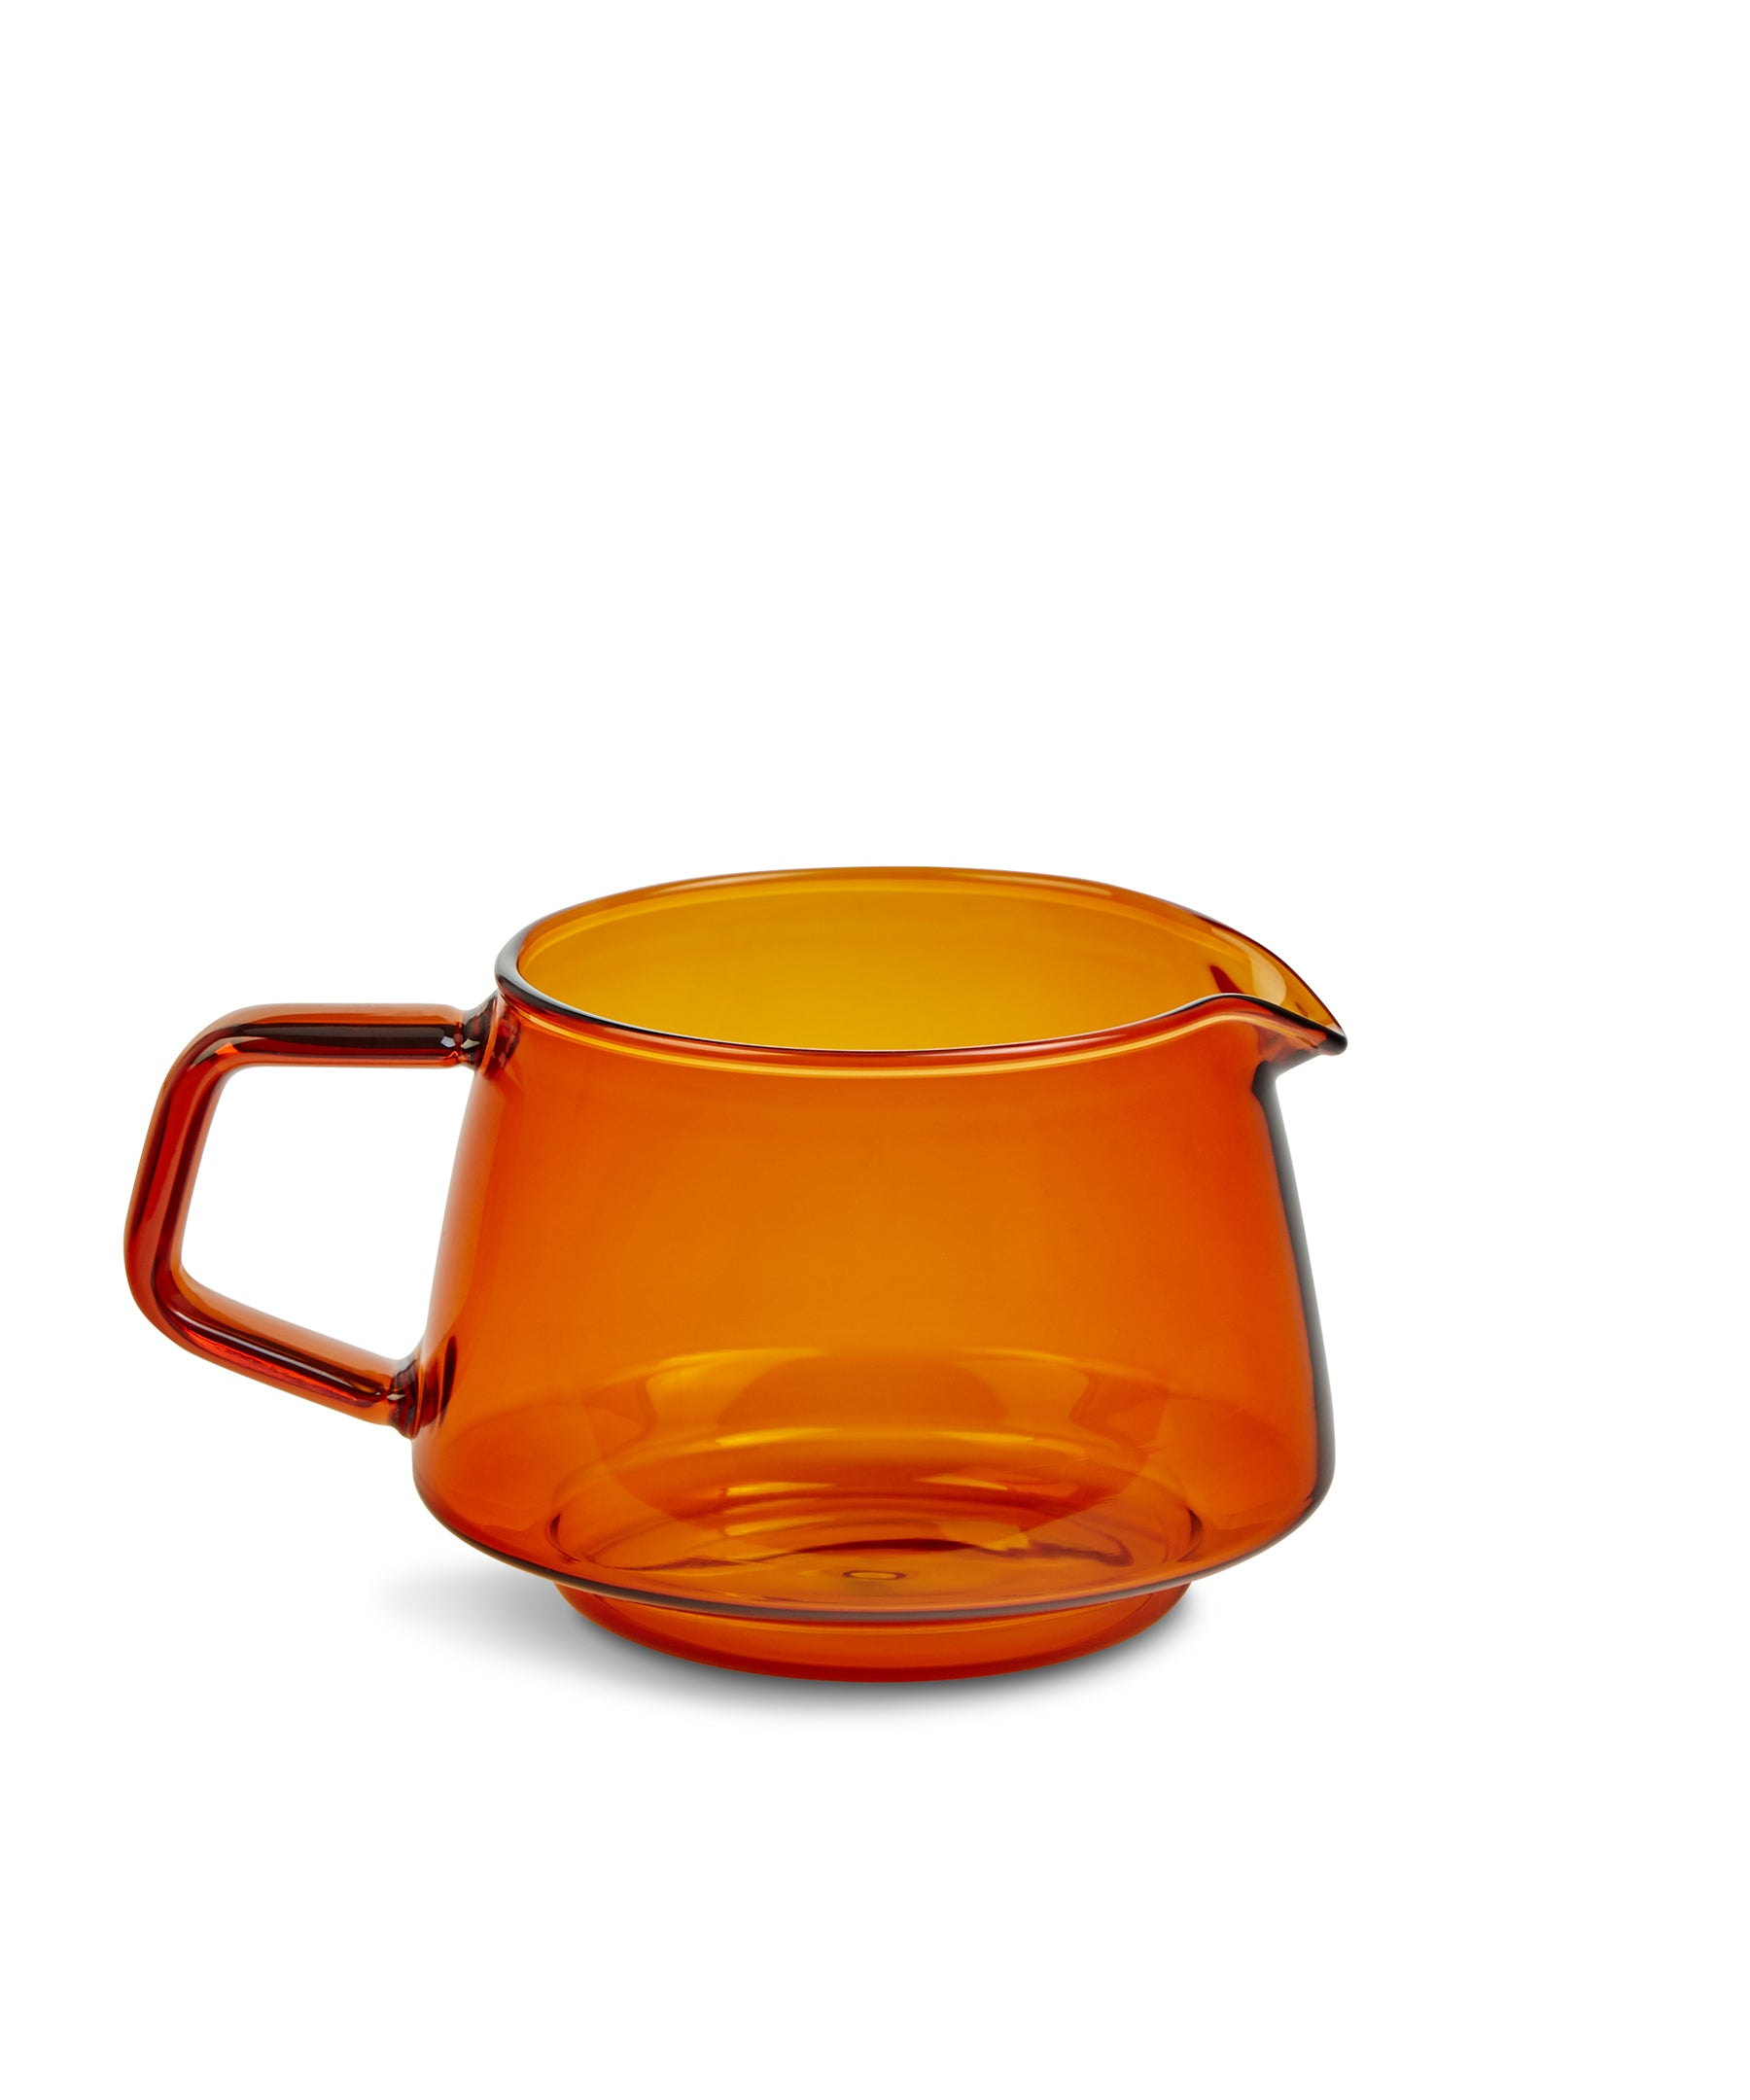 Sepia Jug 300ml by Kinto